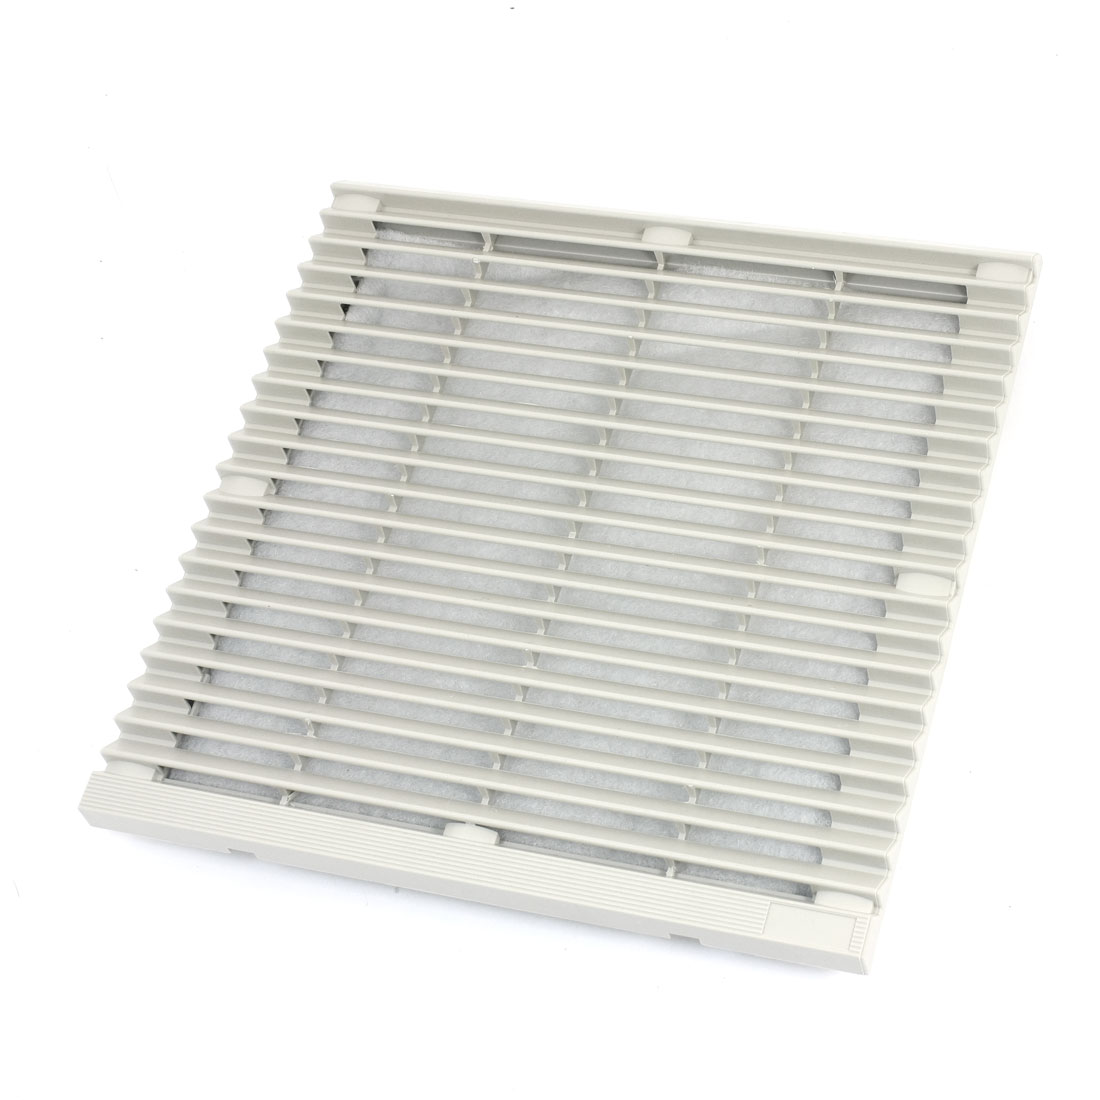 255mm x 255mm Square Gray Plastic Dustproof Mesh Sponge Foam Cabinet Axial Flow Fan Dust Air Filter